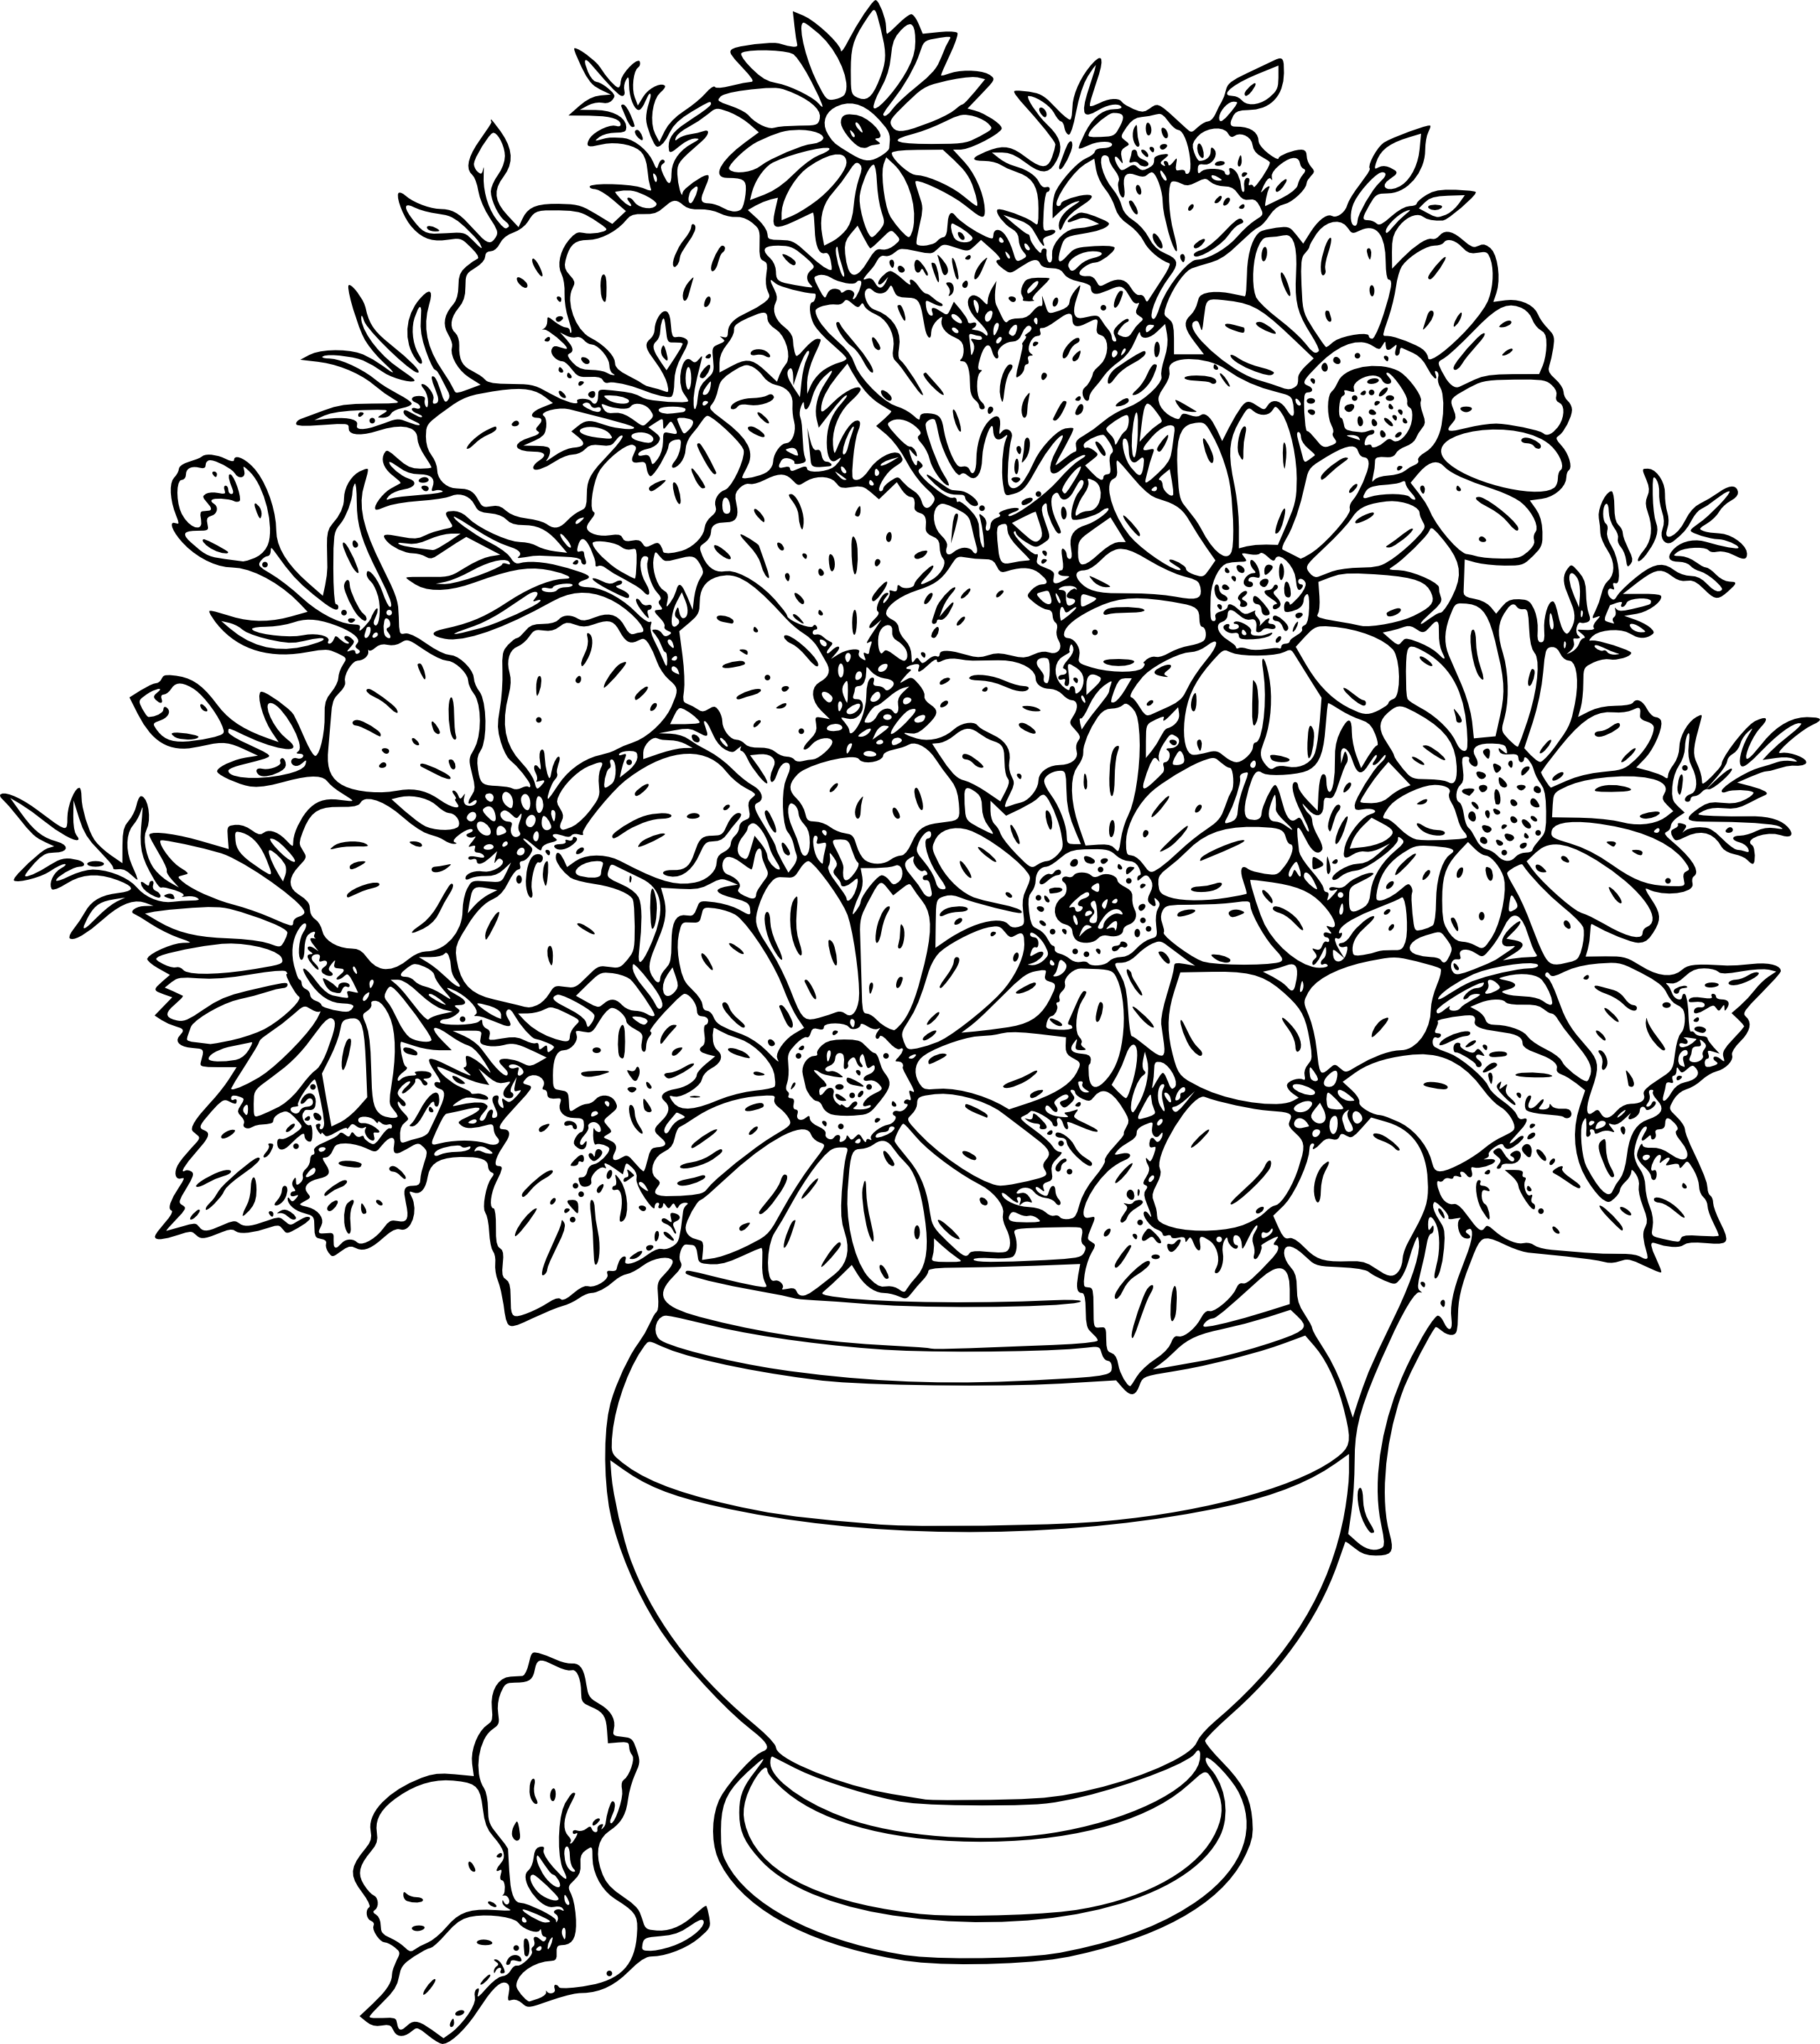 Flower In Line Drawing : Flowers line drawing images clipart best